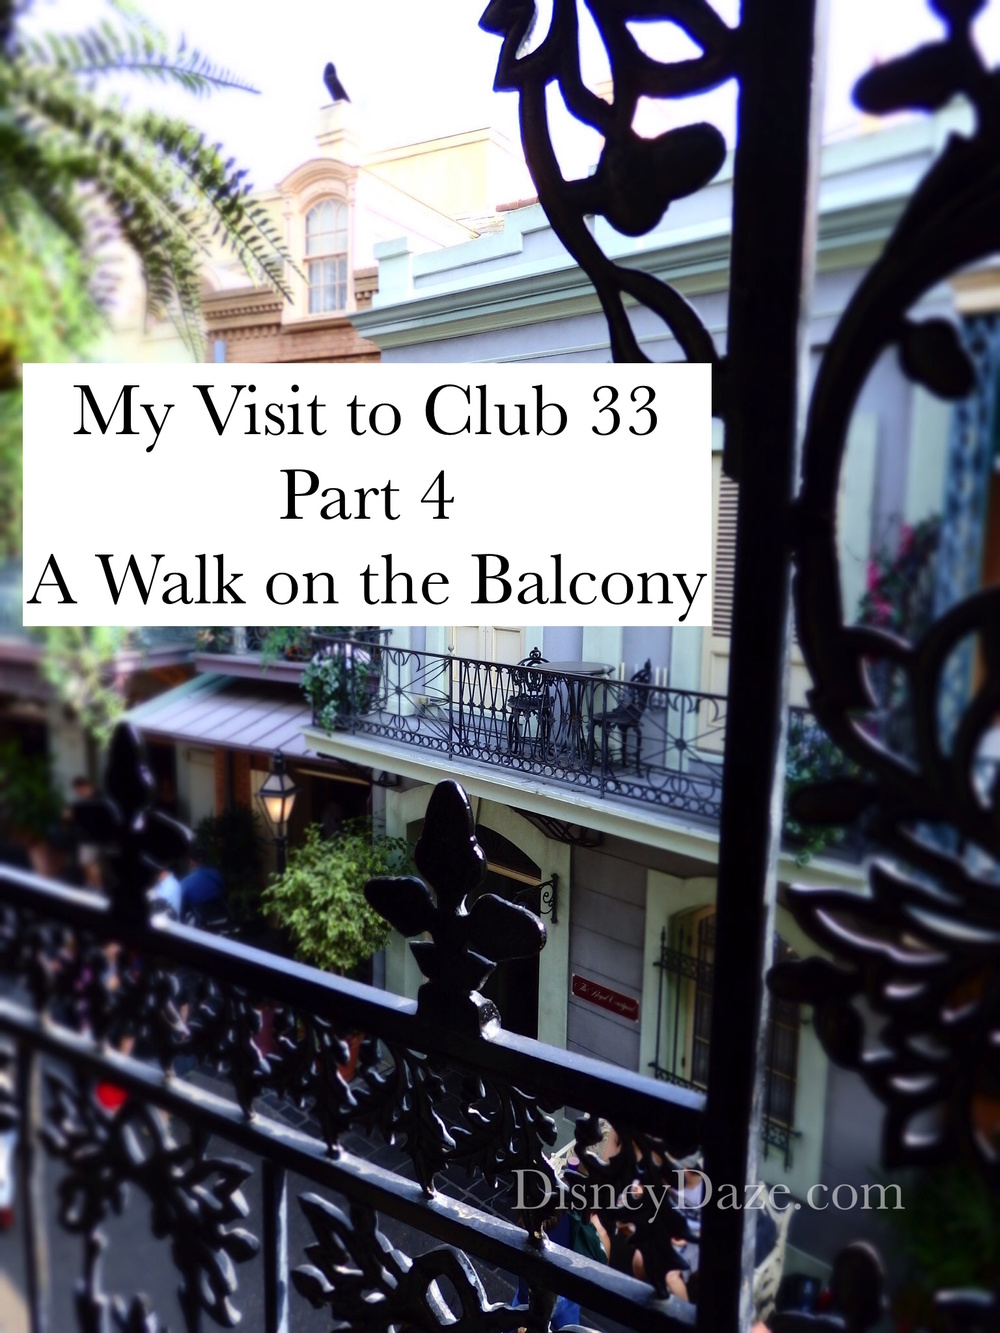 My Visit to Club 33 - Part 4, disneydaze.com